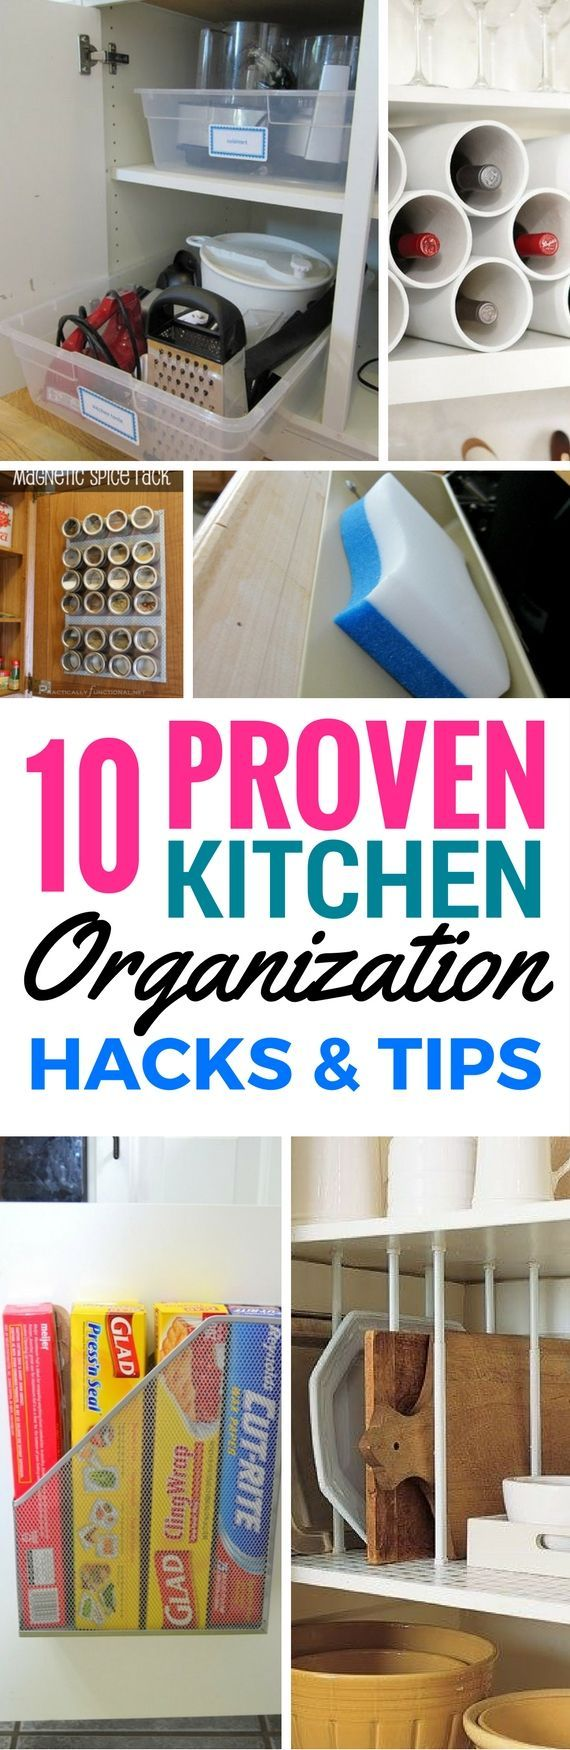 Ideas for kitchen organization - 25 Best Small Kitchen Organization Ideas On Pinterest Storage Small Kitchen Storage And Kitchen Storage